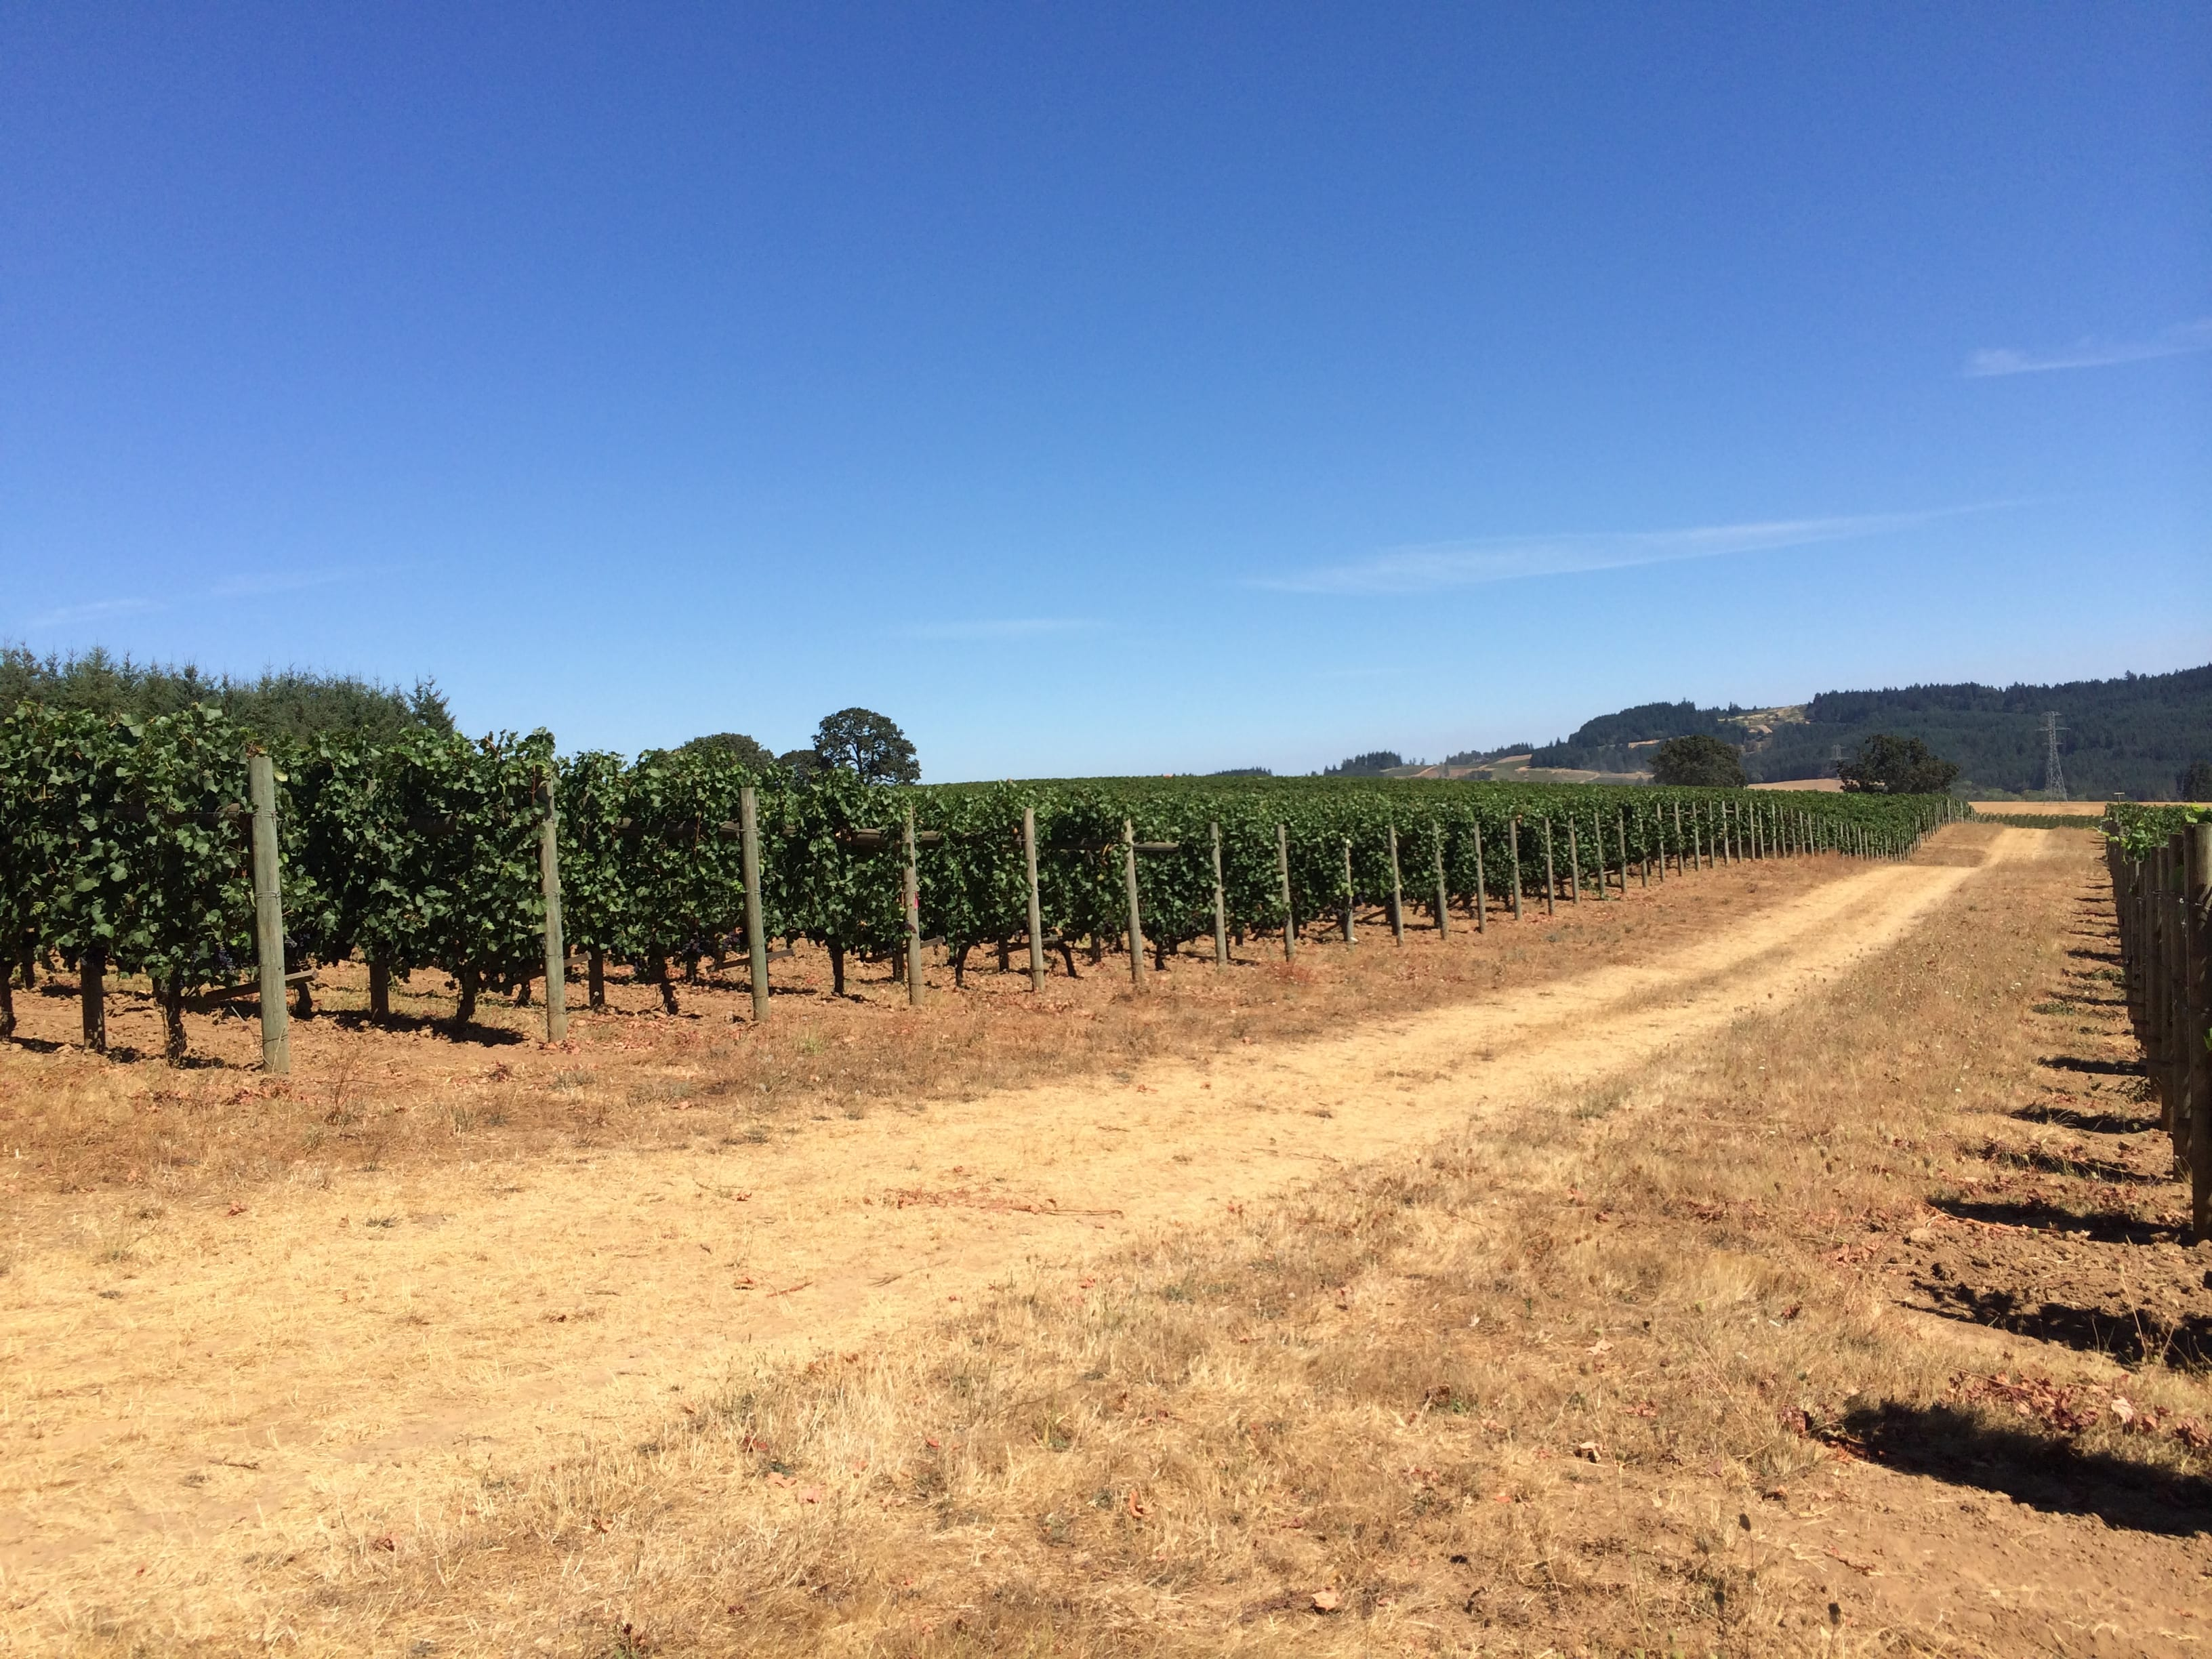 Asa took us up to Abbott Claim Vineyard which was a great vantage to visually take in the Willamette Valley.